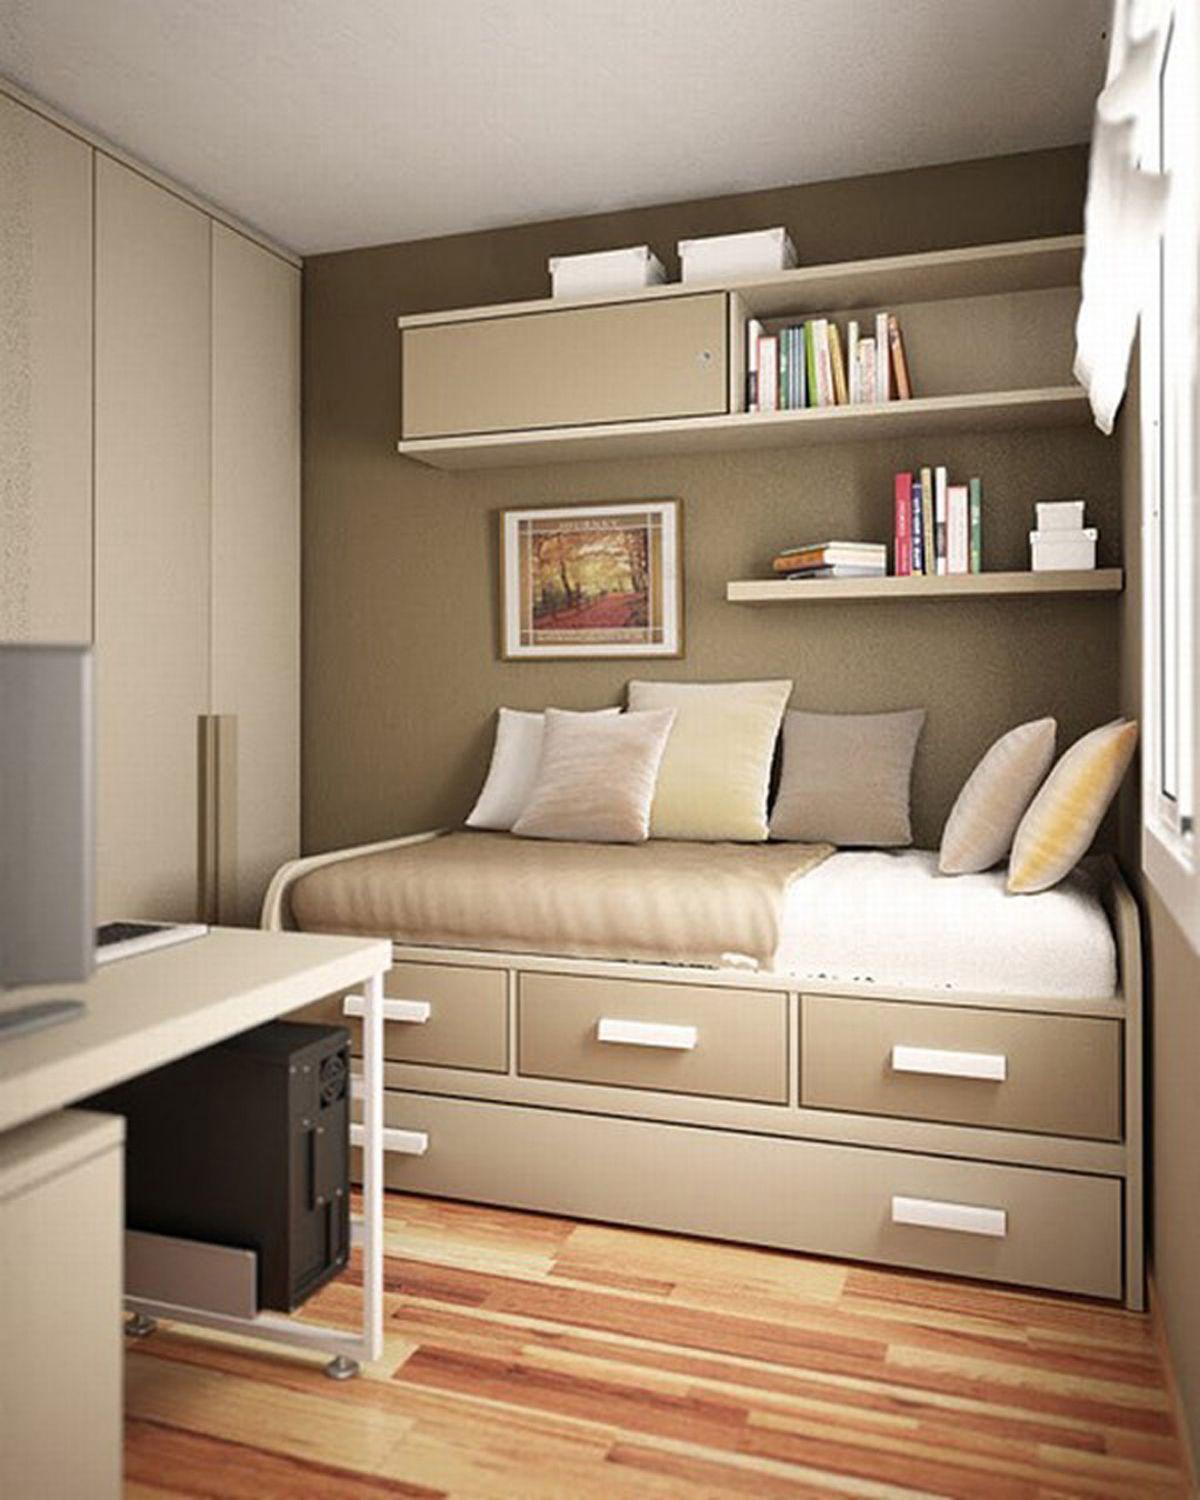 Fitted Bedrooms Small Space. 1000 Images About Cabinet Designs For Small  Spaces On Pinterest Bedroom Part 84